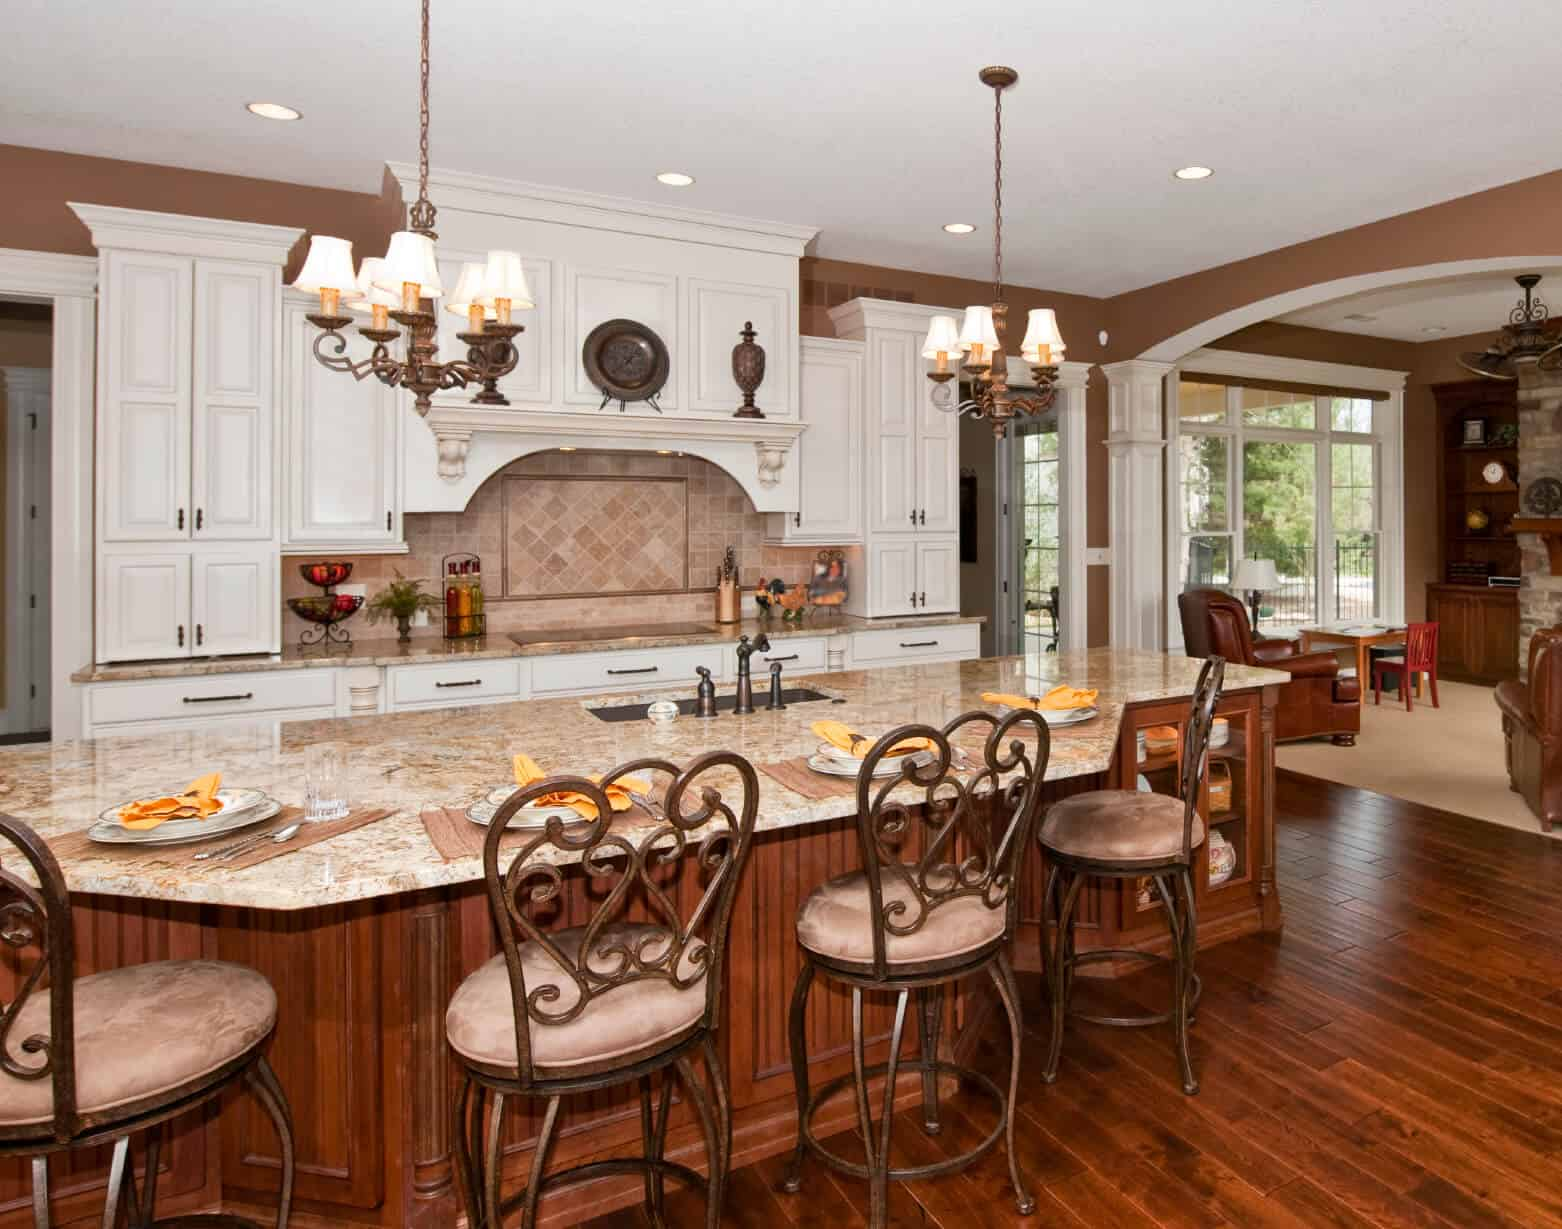 This is clearly not your typical DIY kitchen island.  Instead it's a luxury custom design in a large, open kitchen features immense island done in natural wood tones, with built-in glass cabinetry, dining area, and full sink on marble countertop.